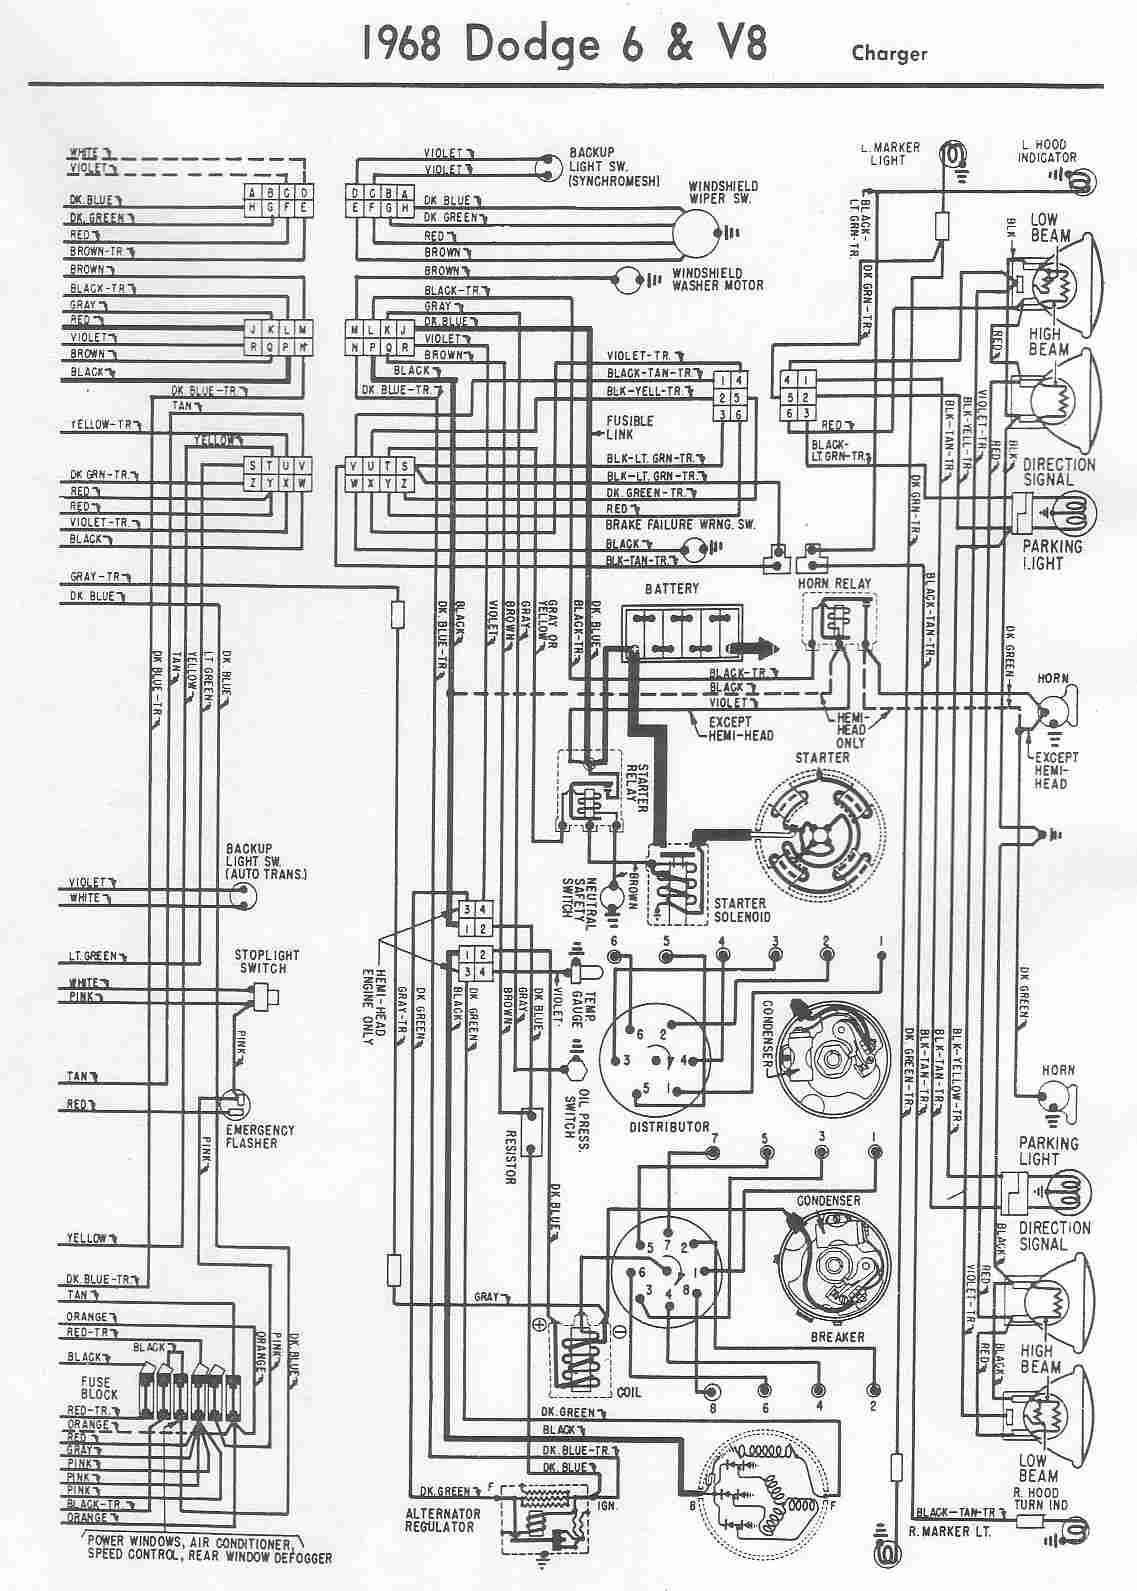 charger electrical wiring diagram of 1968 dodge 6 and v8?t\=1508404771 1975 dodge truck wiring diagram 1972 dodge d100 wiring diagram 2007 Chrysler Town and Country Wiring-Diagram at edmiracle.co